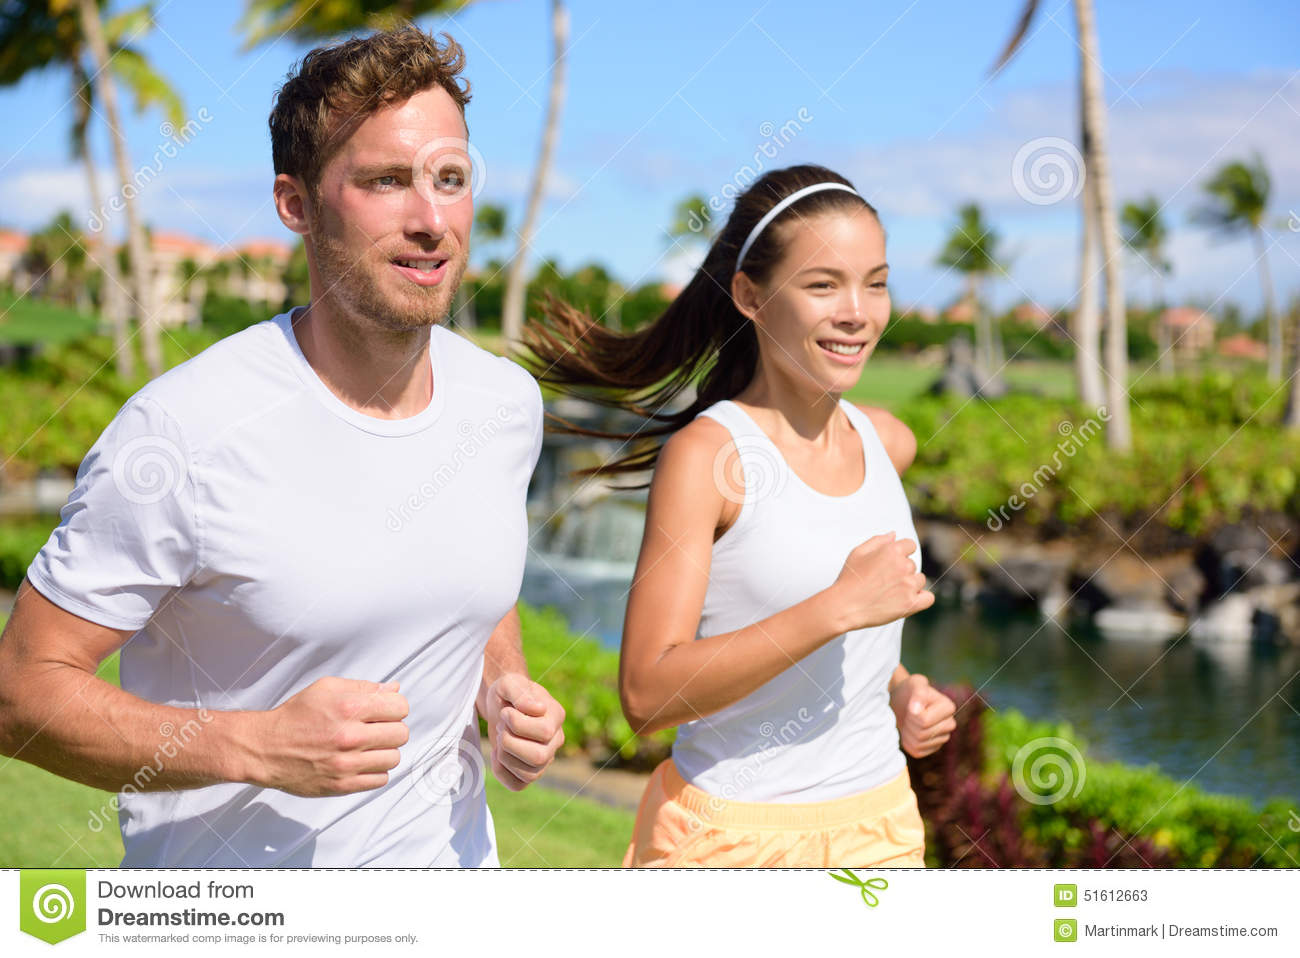 Jogging Couple Of Runners Running Together In Park Stock